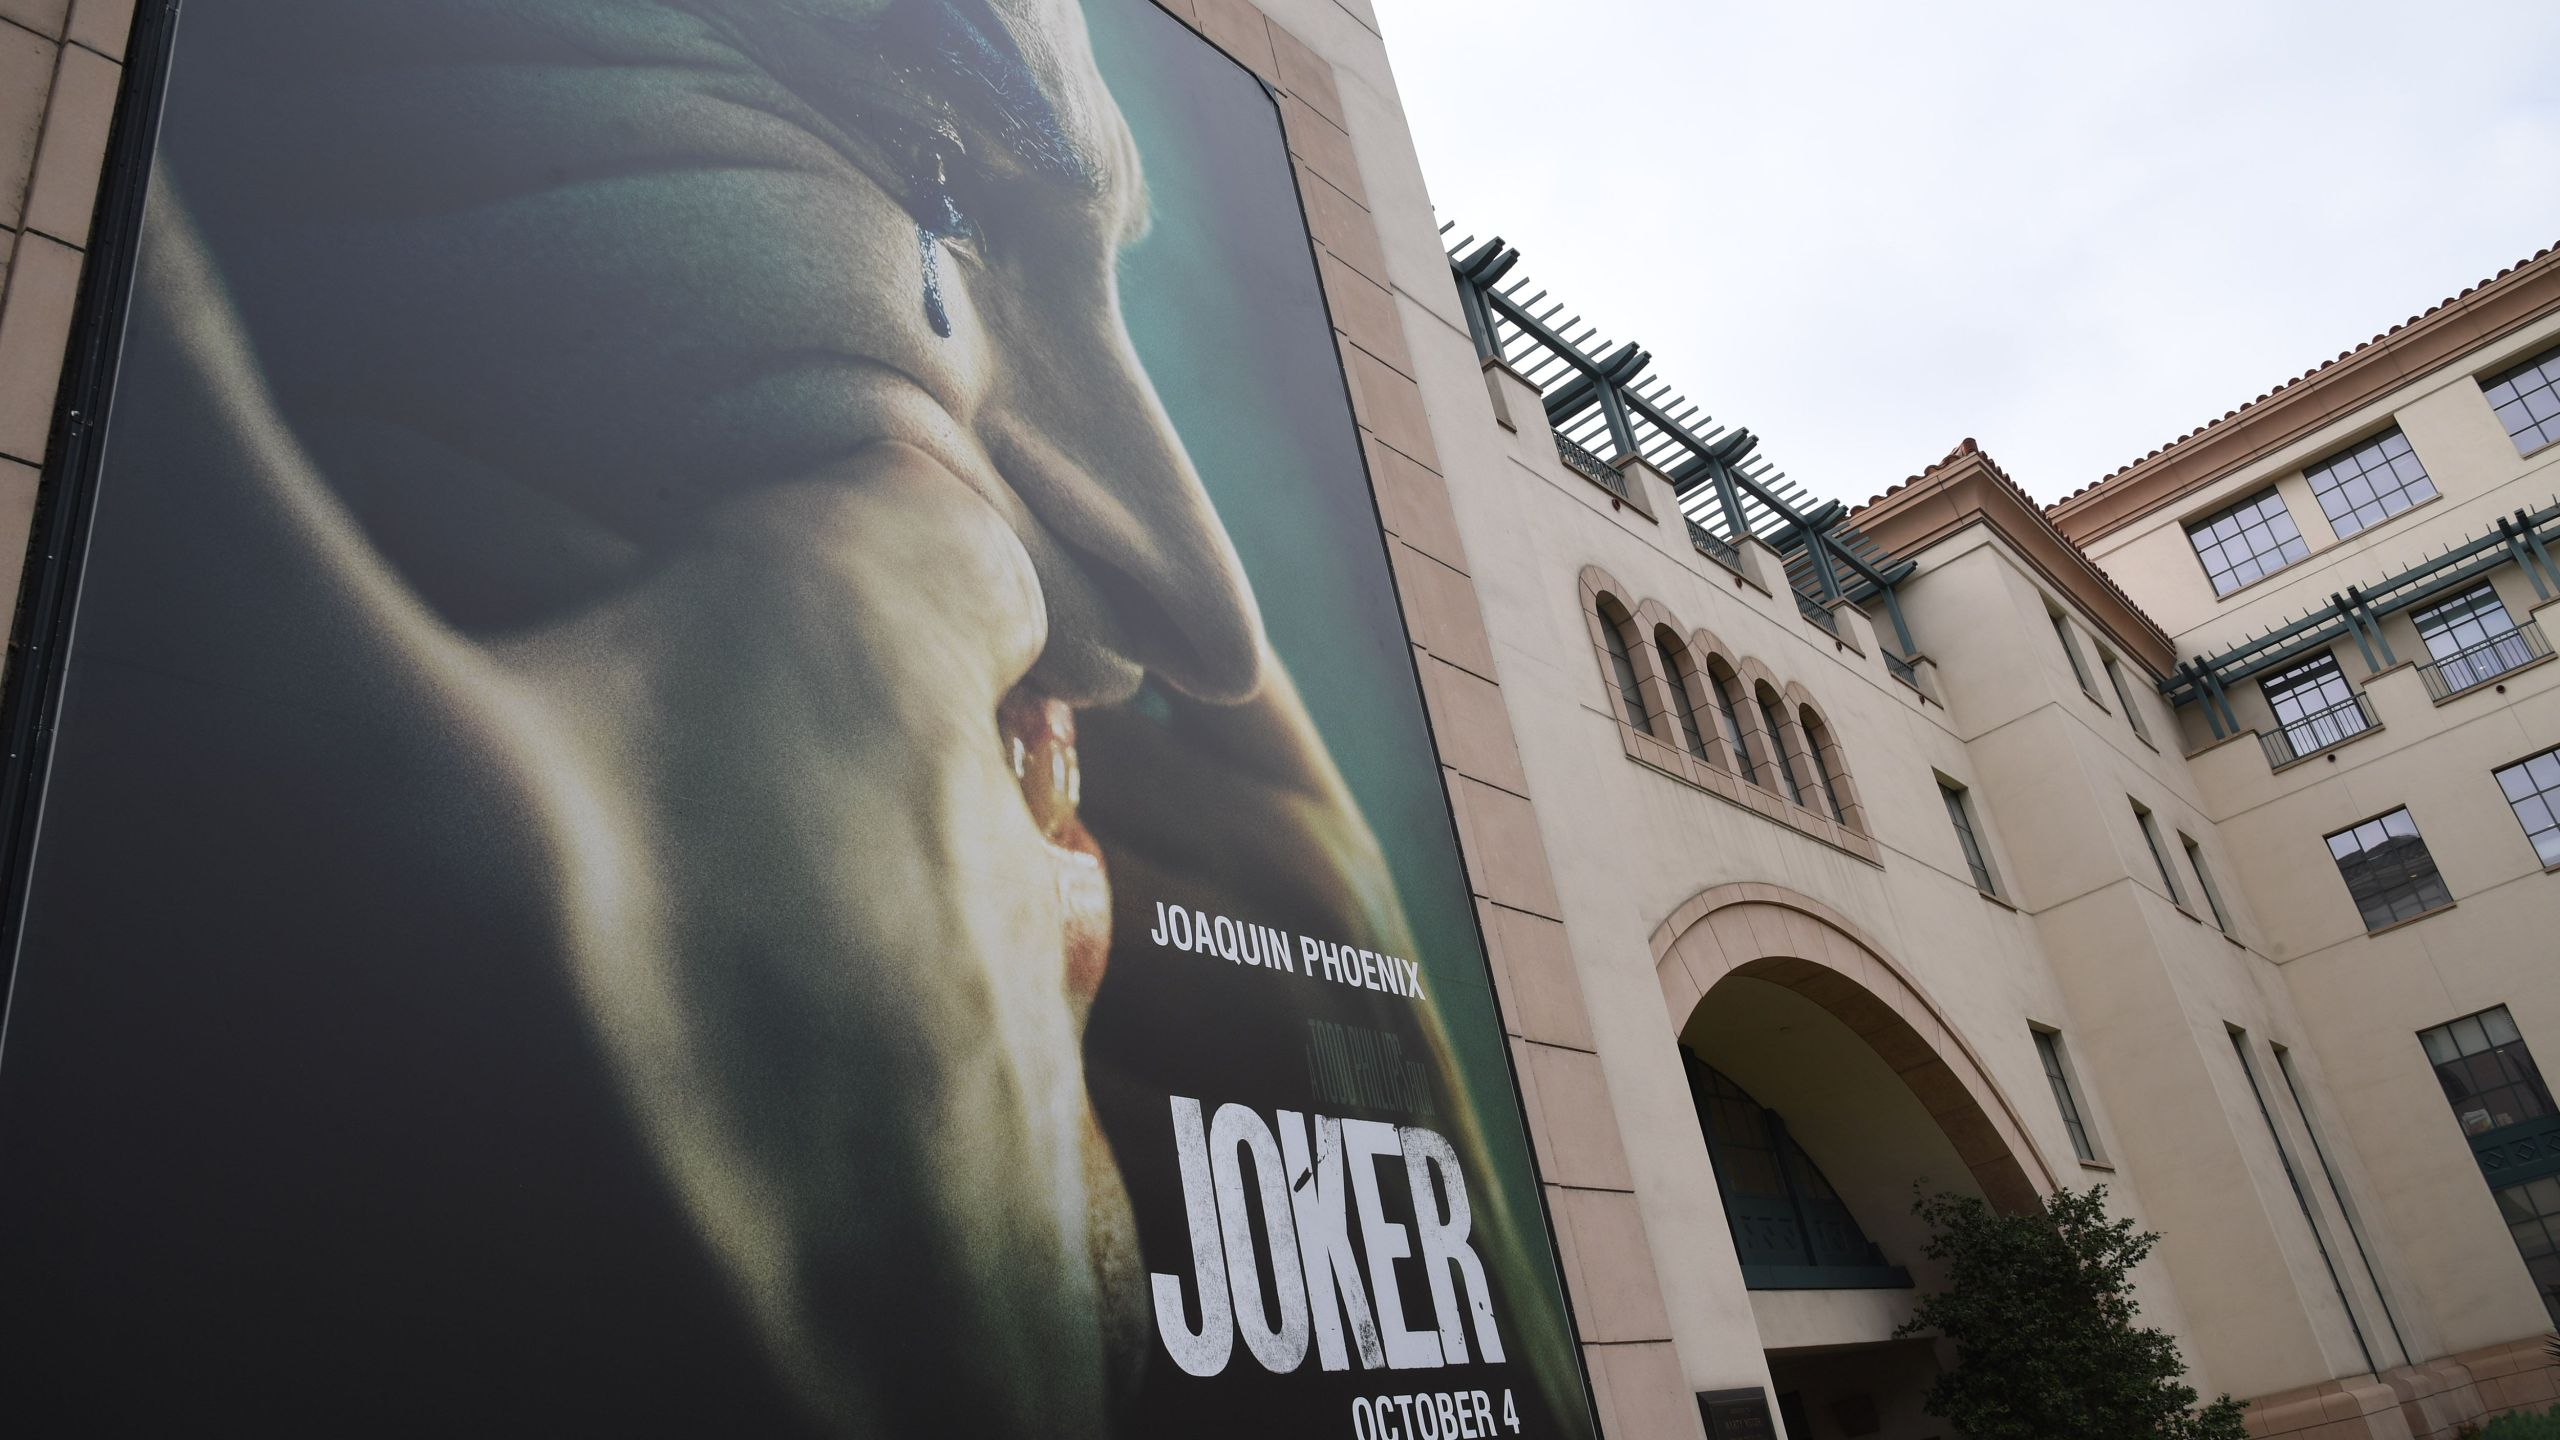 """A poster for the upcoming film """"The Joker"""" is seen outside Warner Brothers Studios in Burbank, California, Sept. 27, 2019. (Credit: ROBYN BECK/AFP/Getty Images)"""